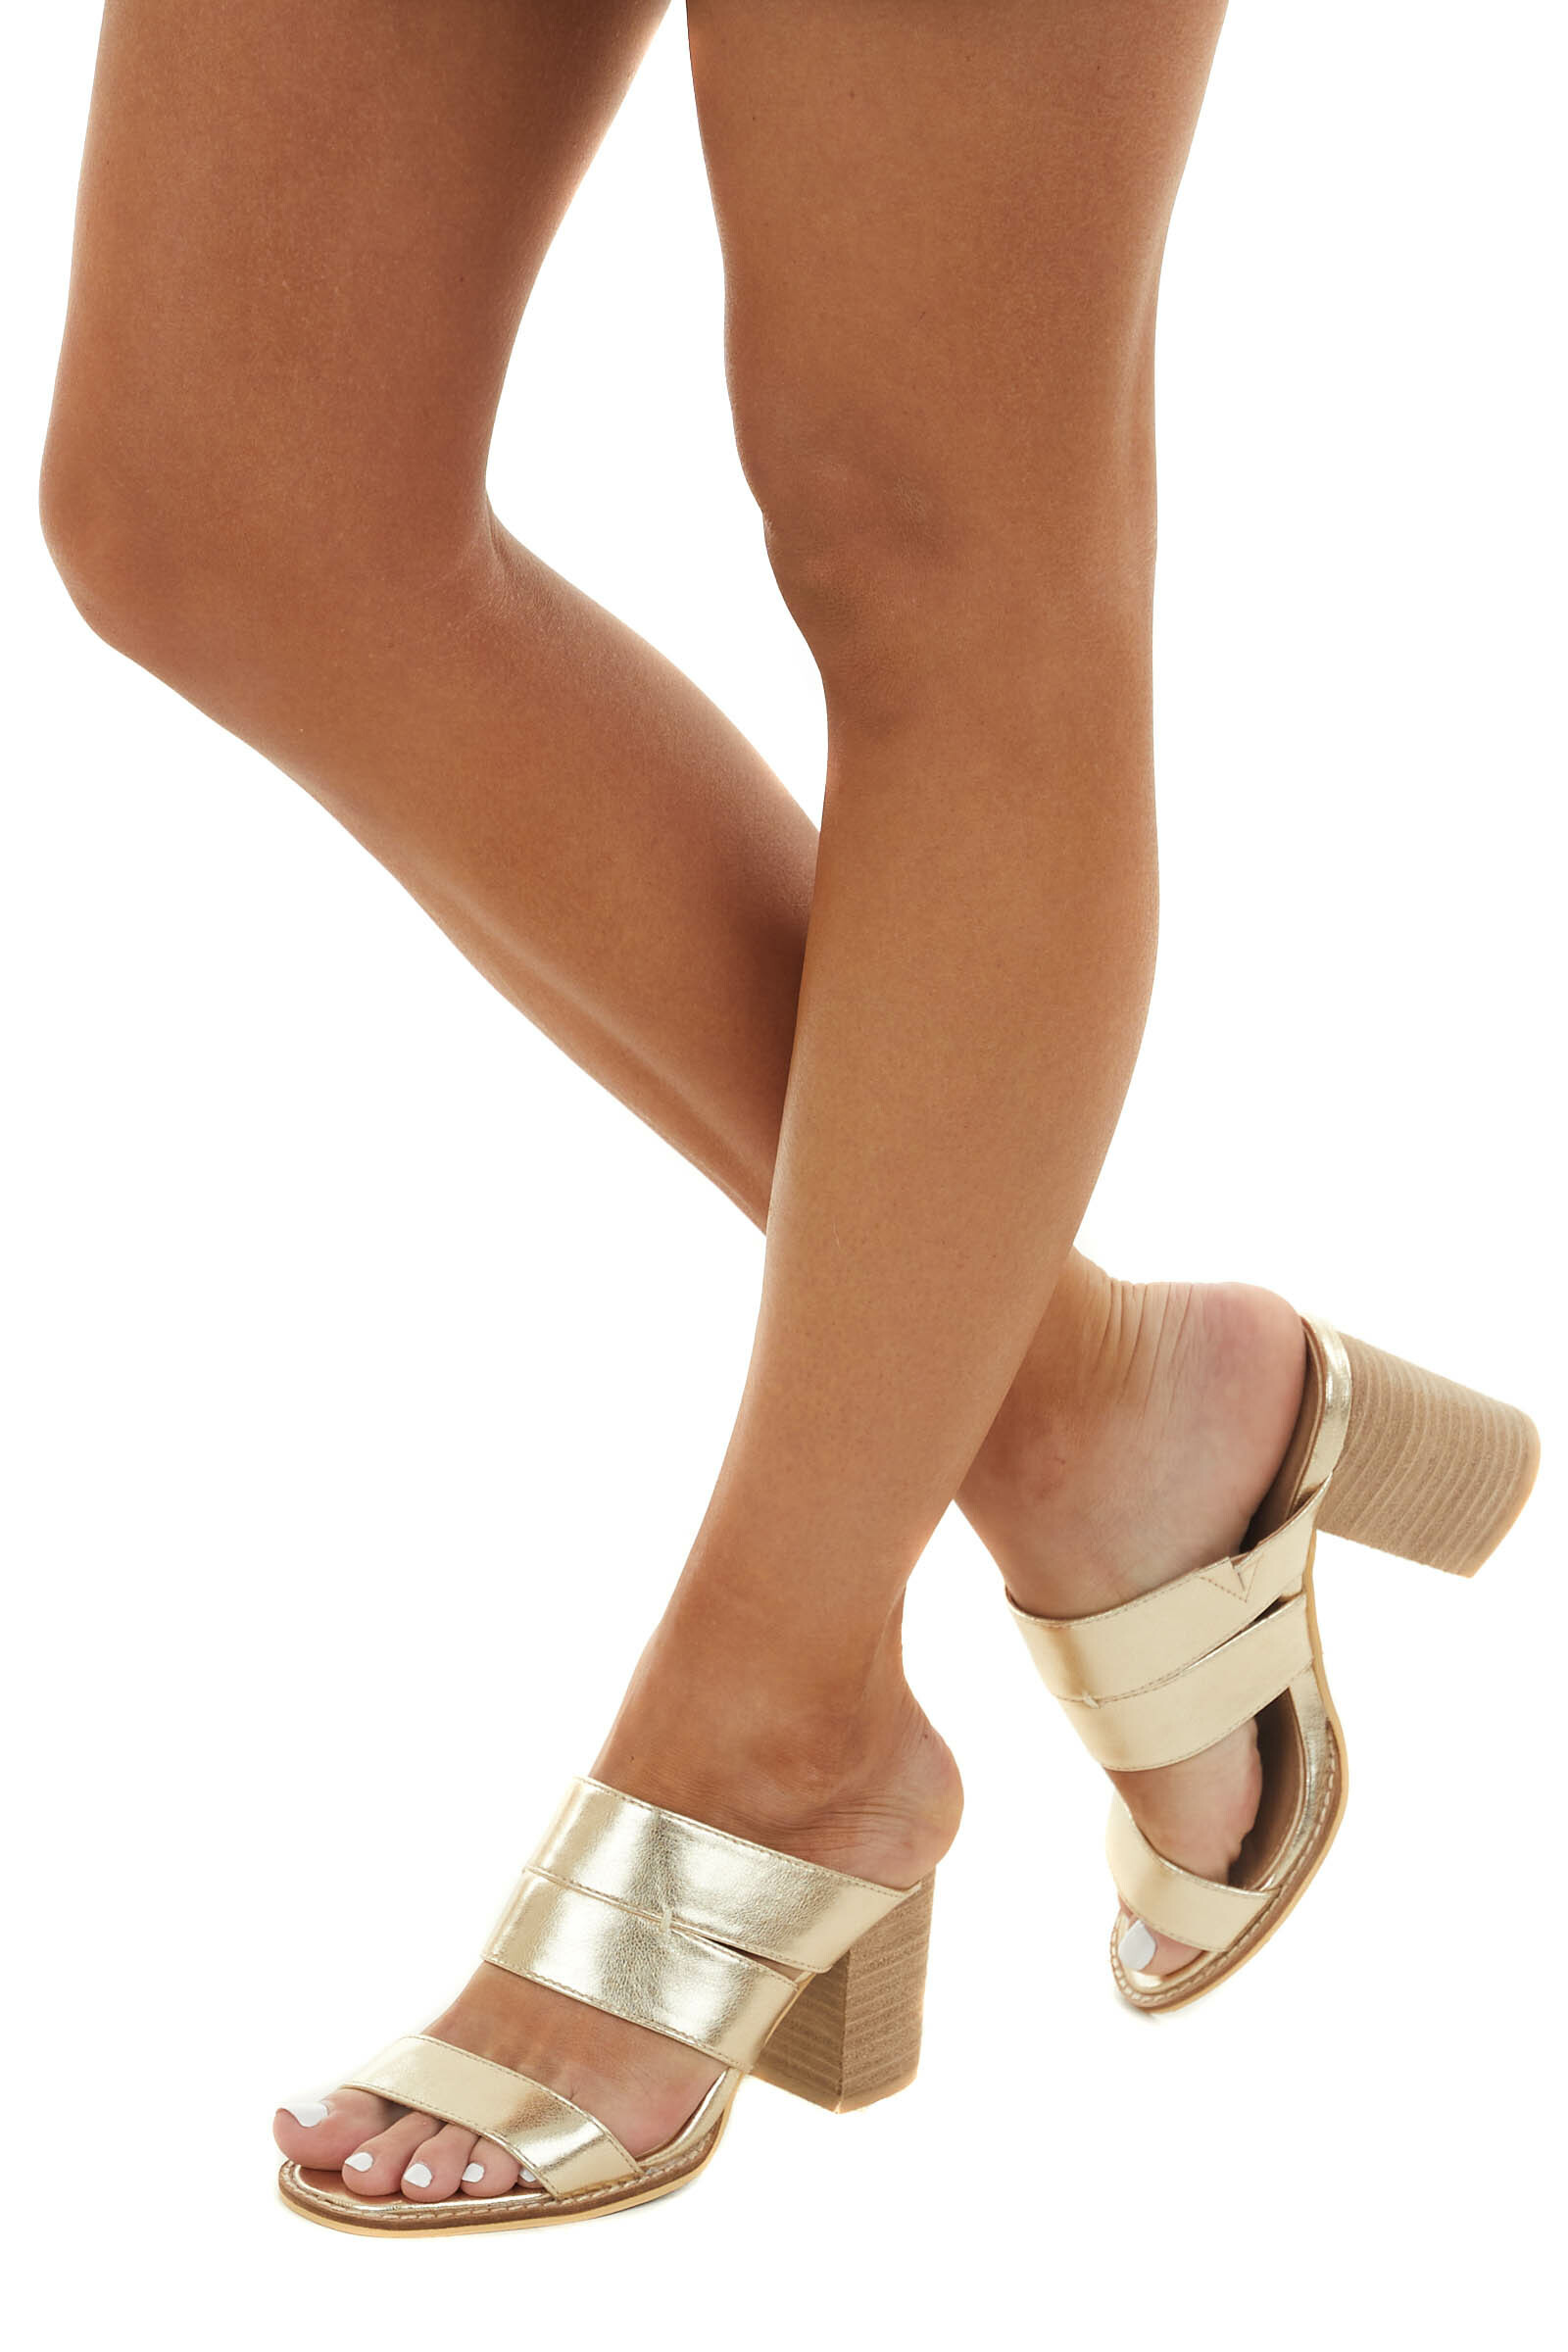 Shiny Gold Faux Leather Open Toe Heeled Mules